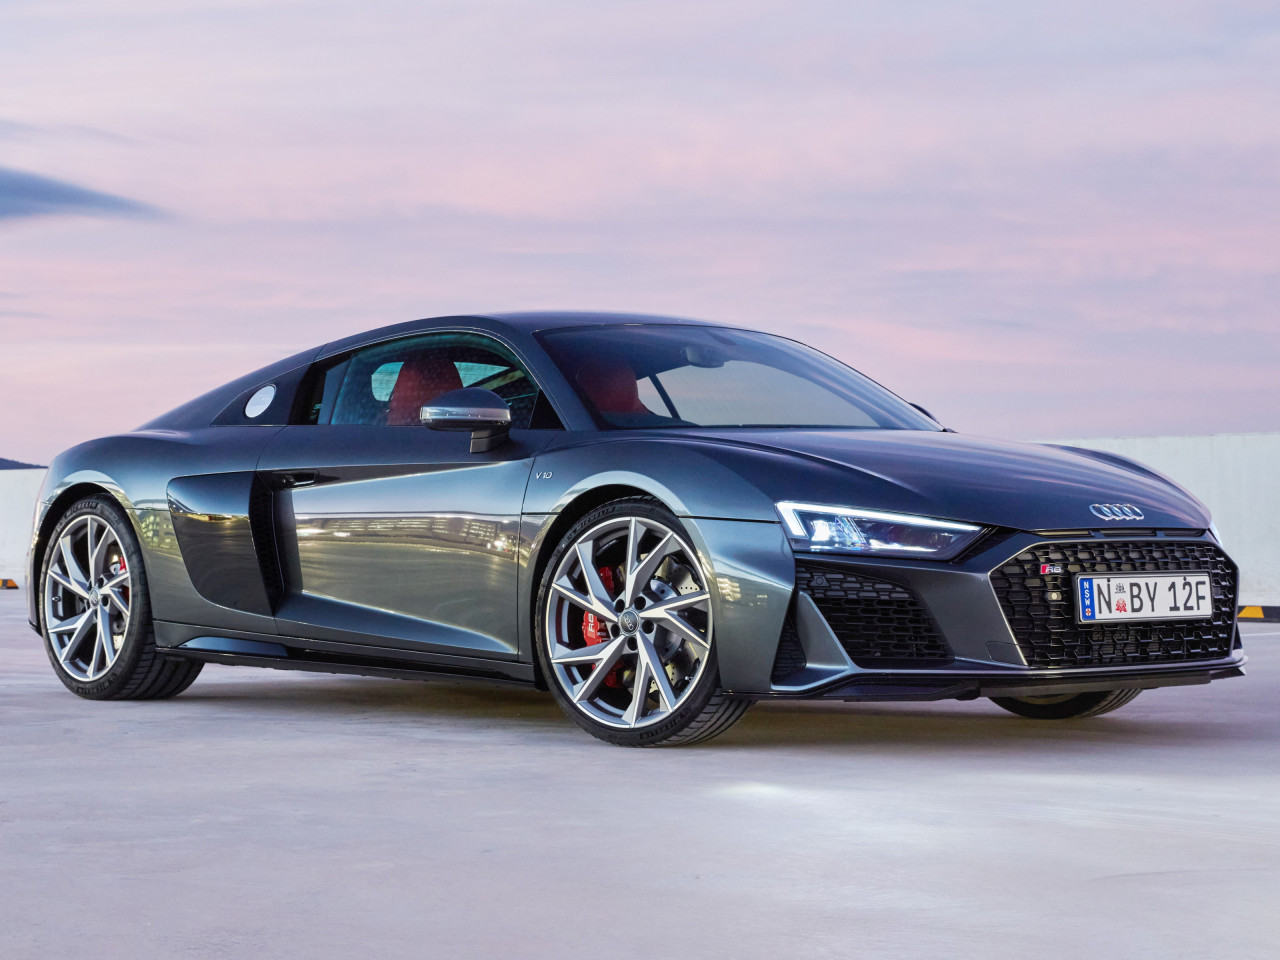 Audi R8 V10 RWD Coupe wallpaper 1280x960